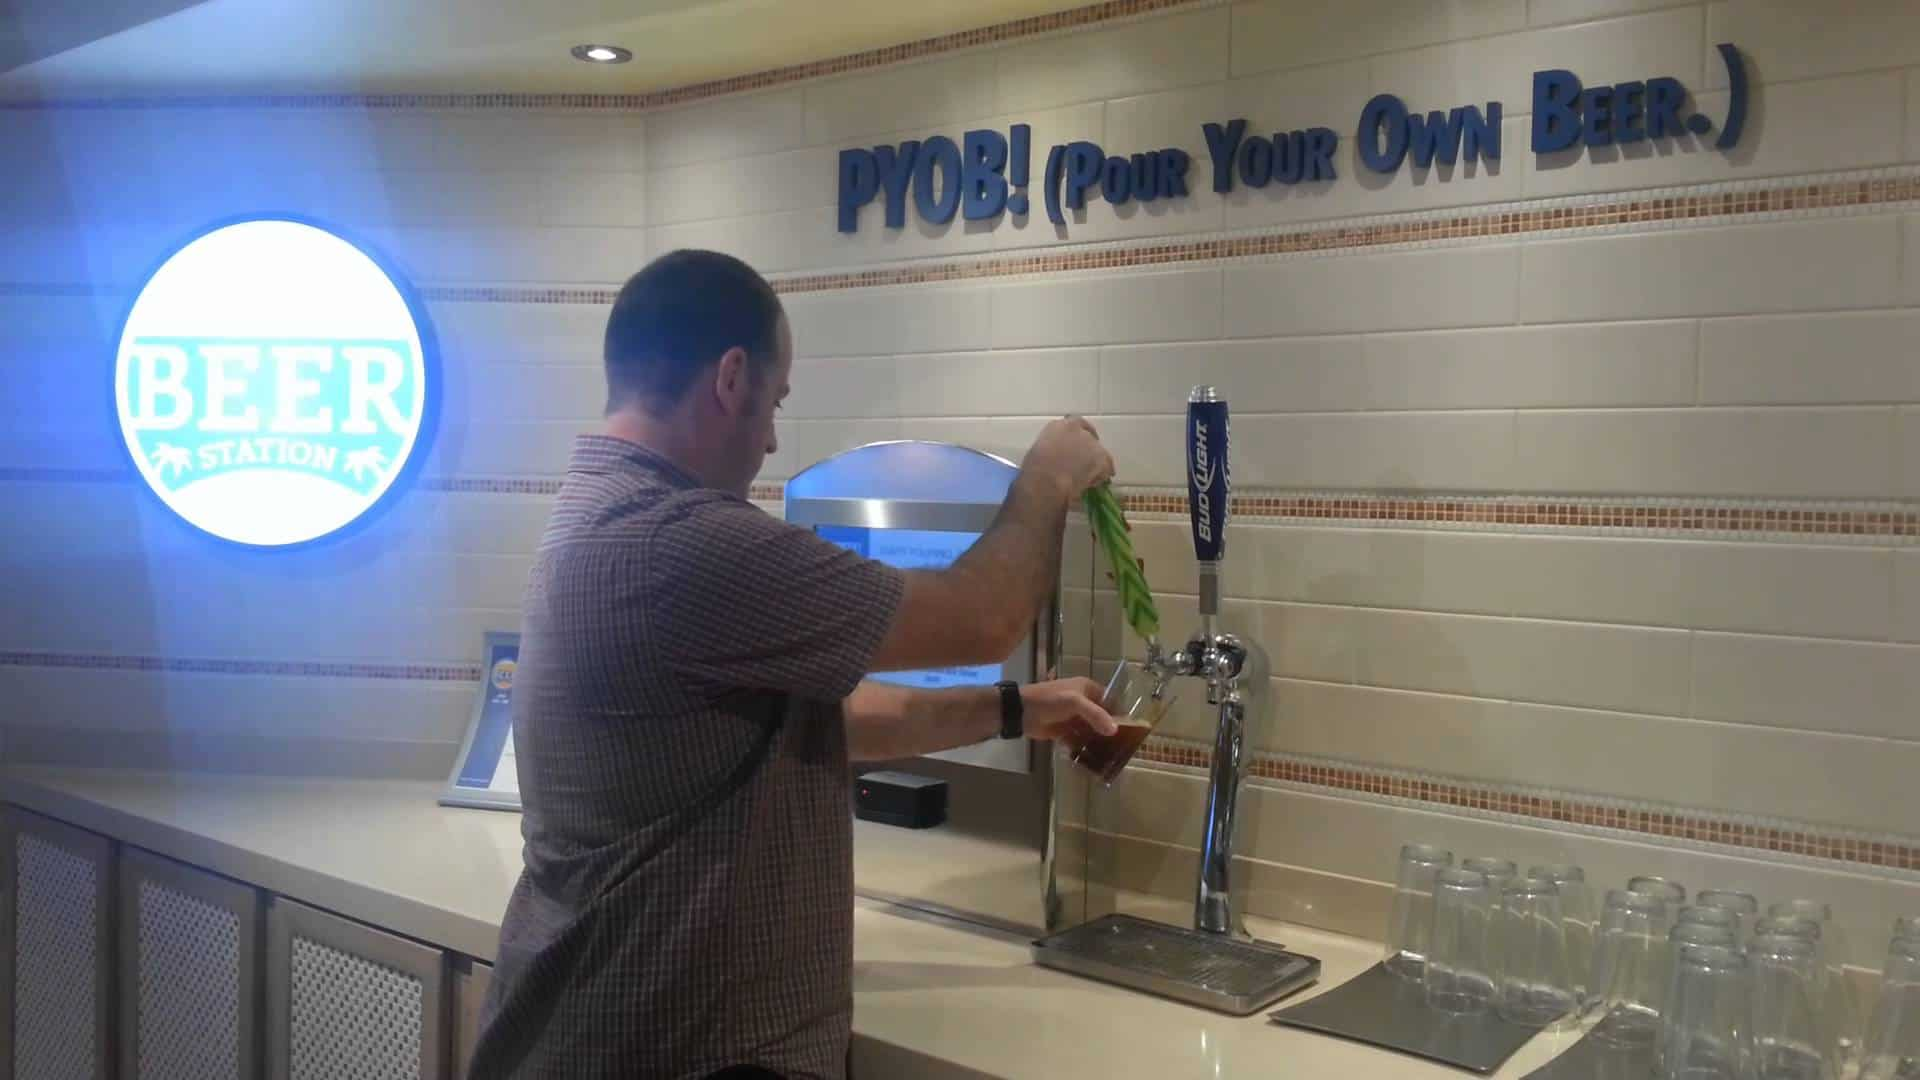 Enjoy Carnival Sunshine S Pyob Pour Your Own Beer